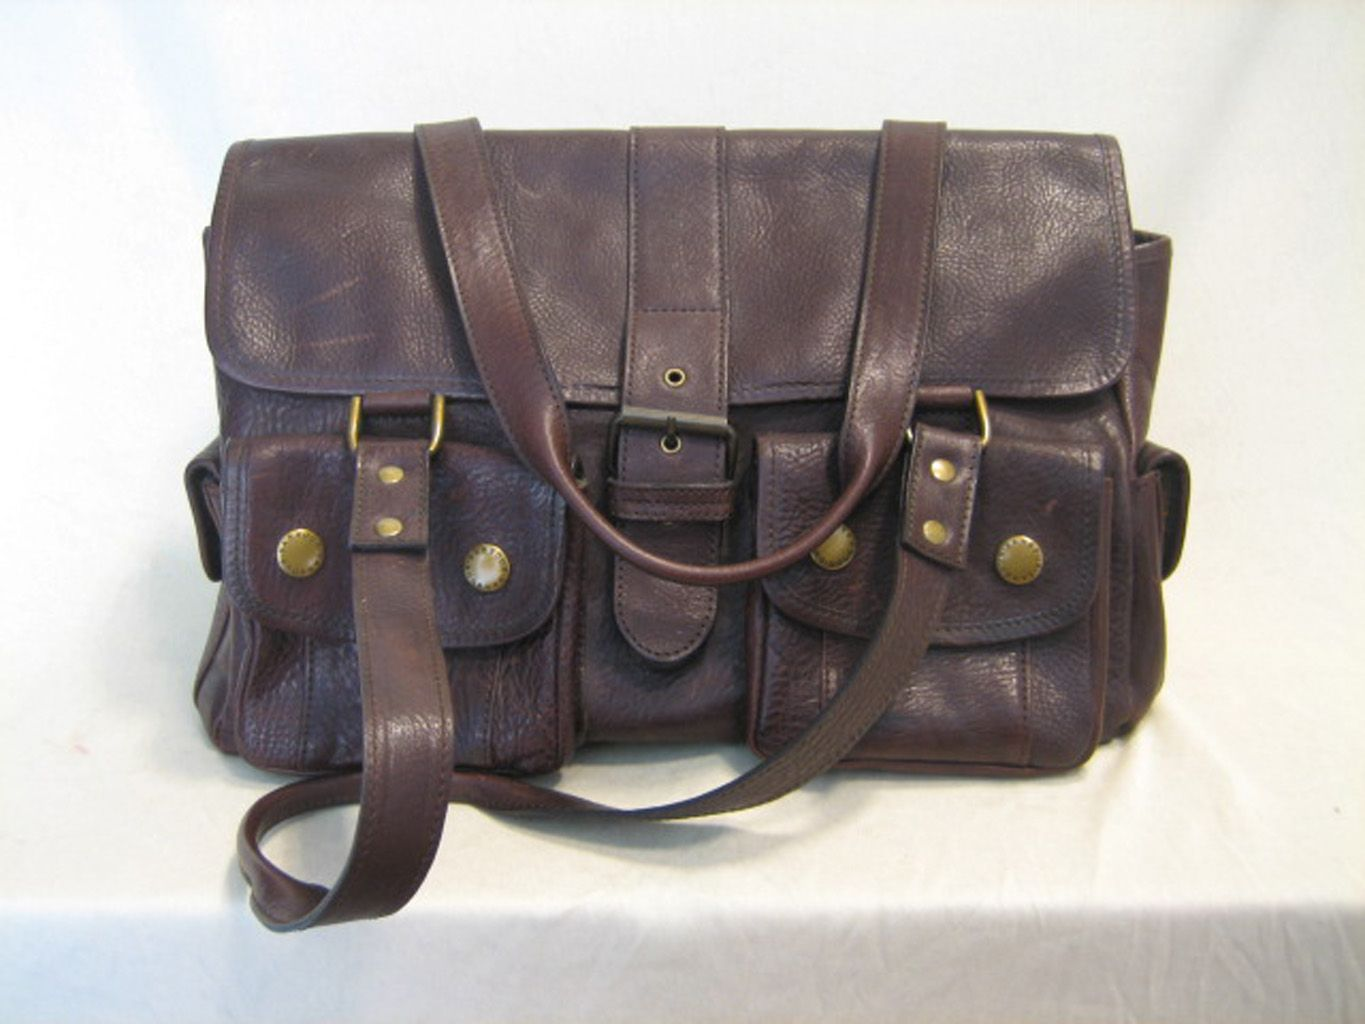 Lederen handtas van het merk Barbour / Leather Utility Brown handbag.